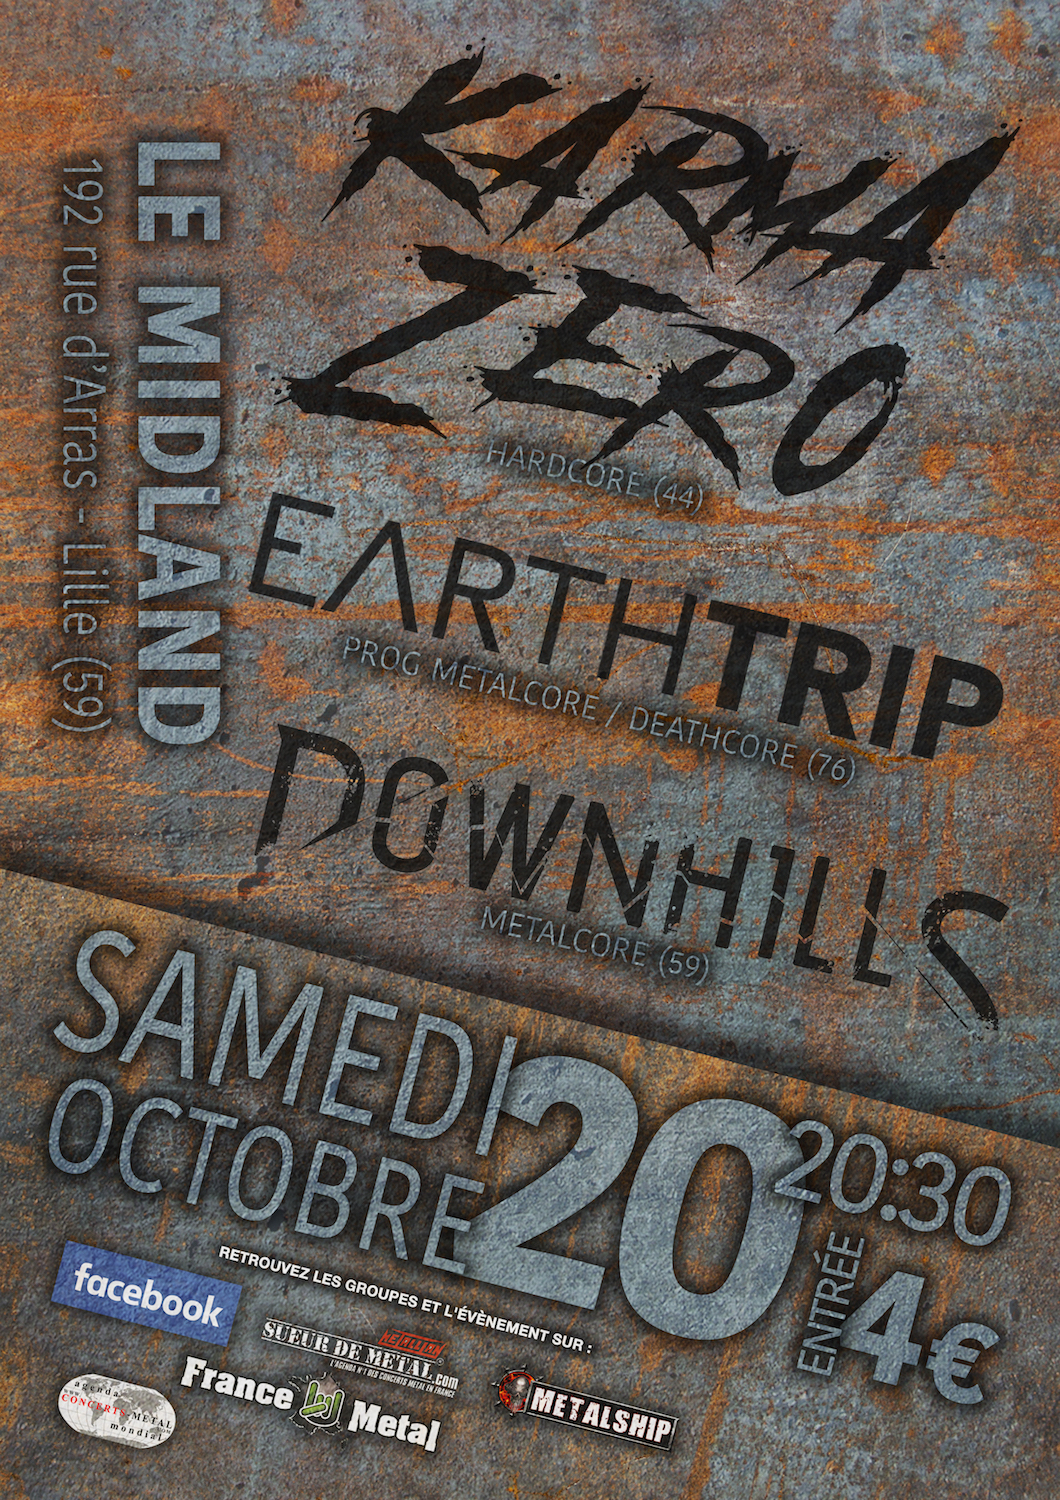 Karma Zero / Earth Trip / Downhills